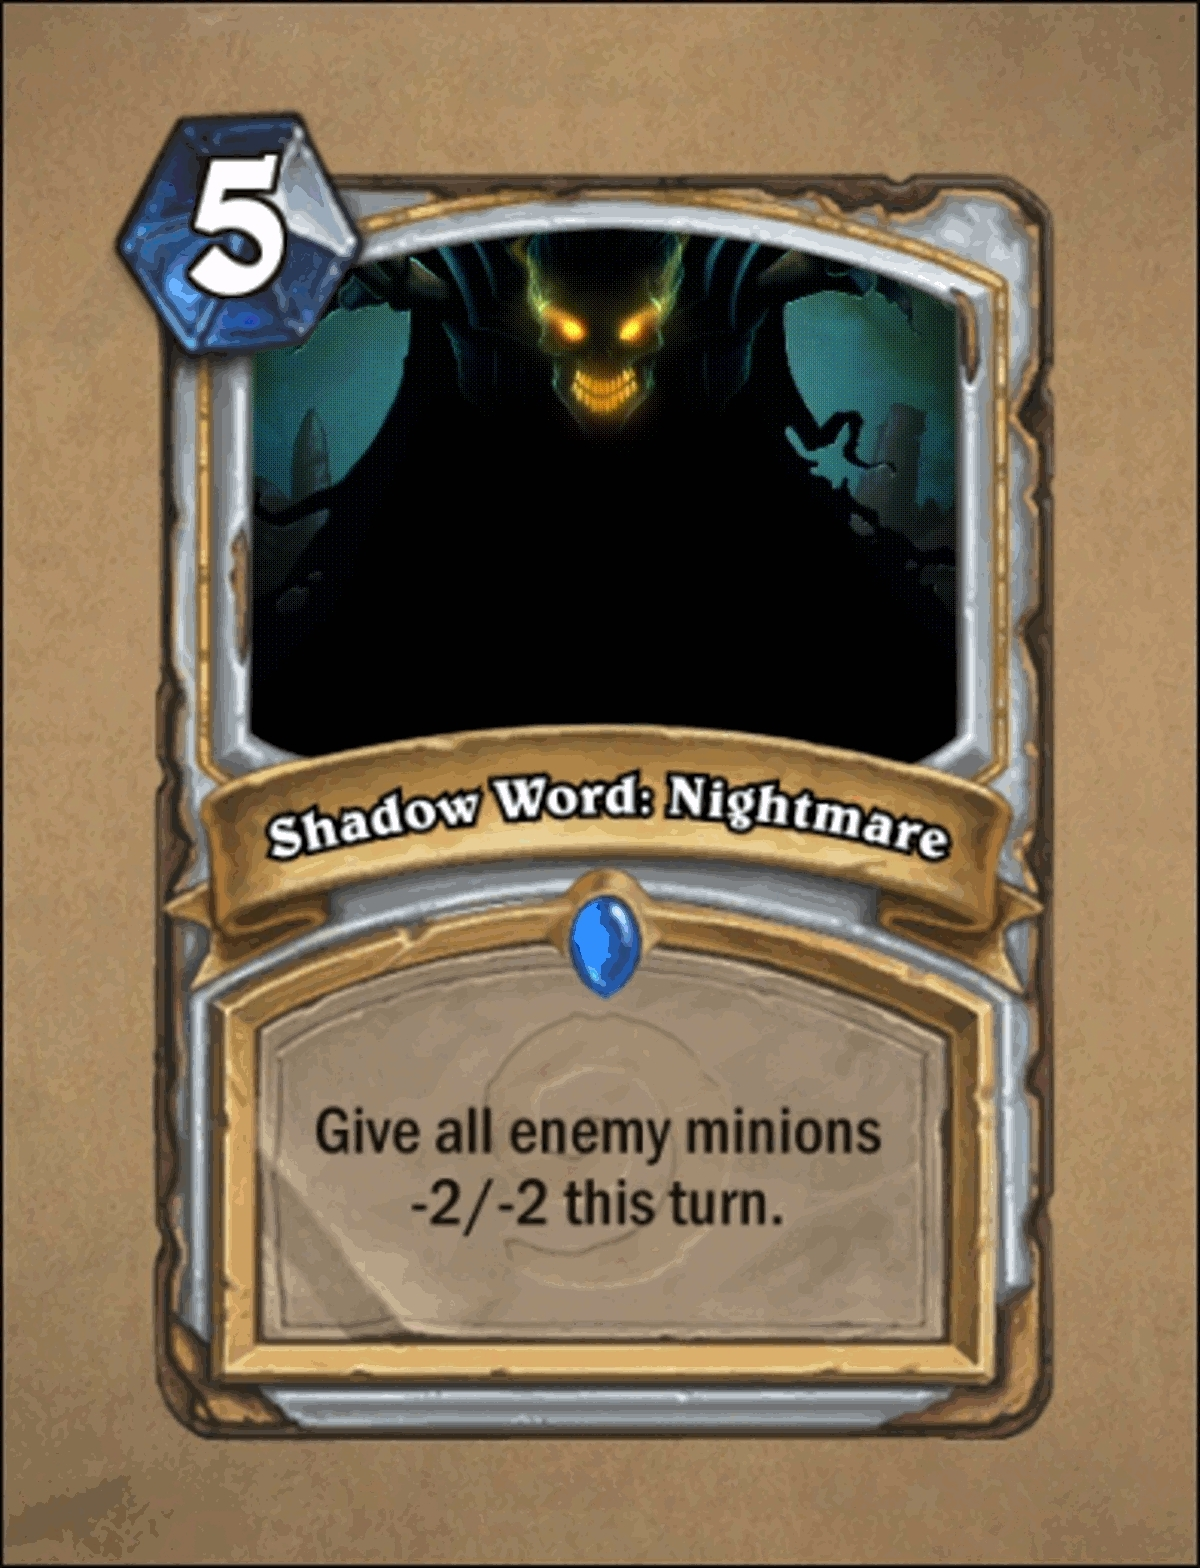 Coolboypai, customhearthstone, Shadow Word: Nightmare GIFs